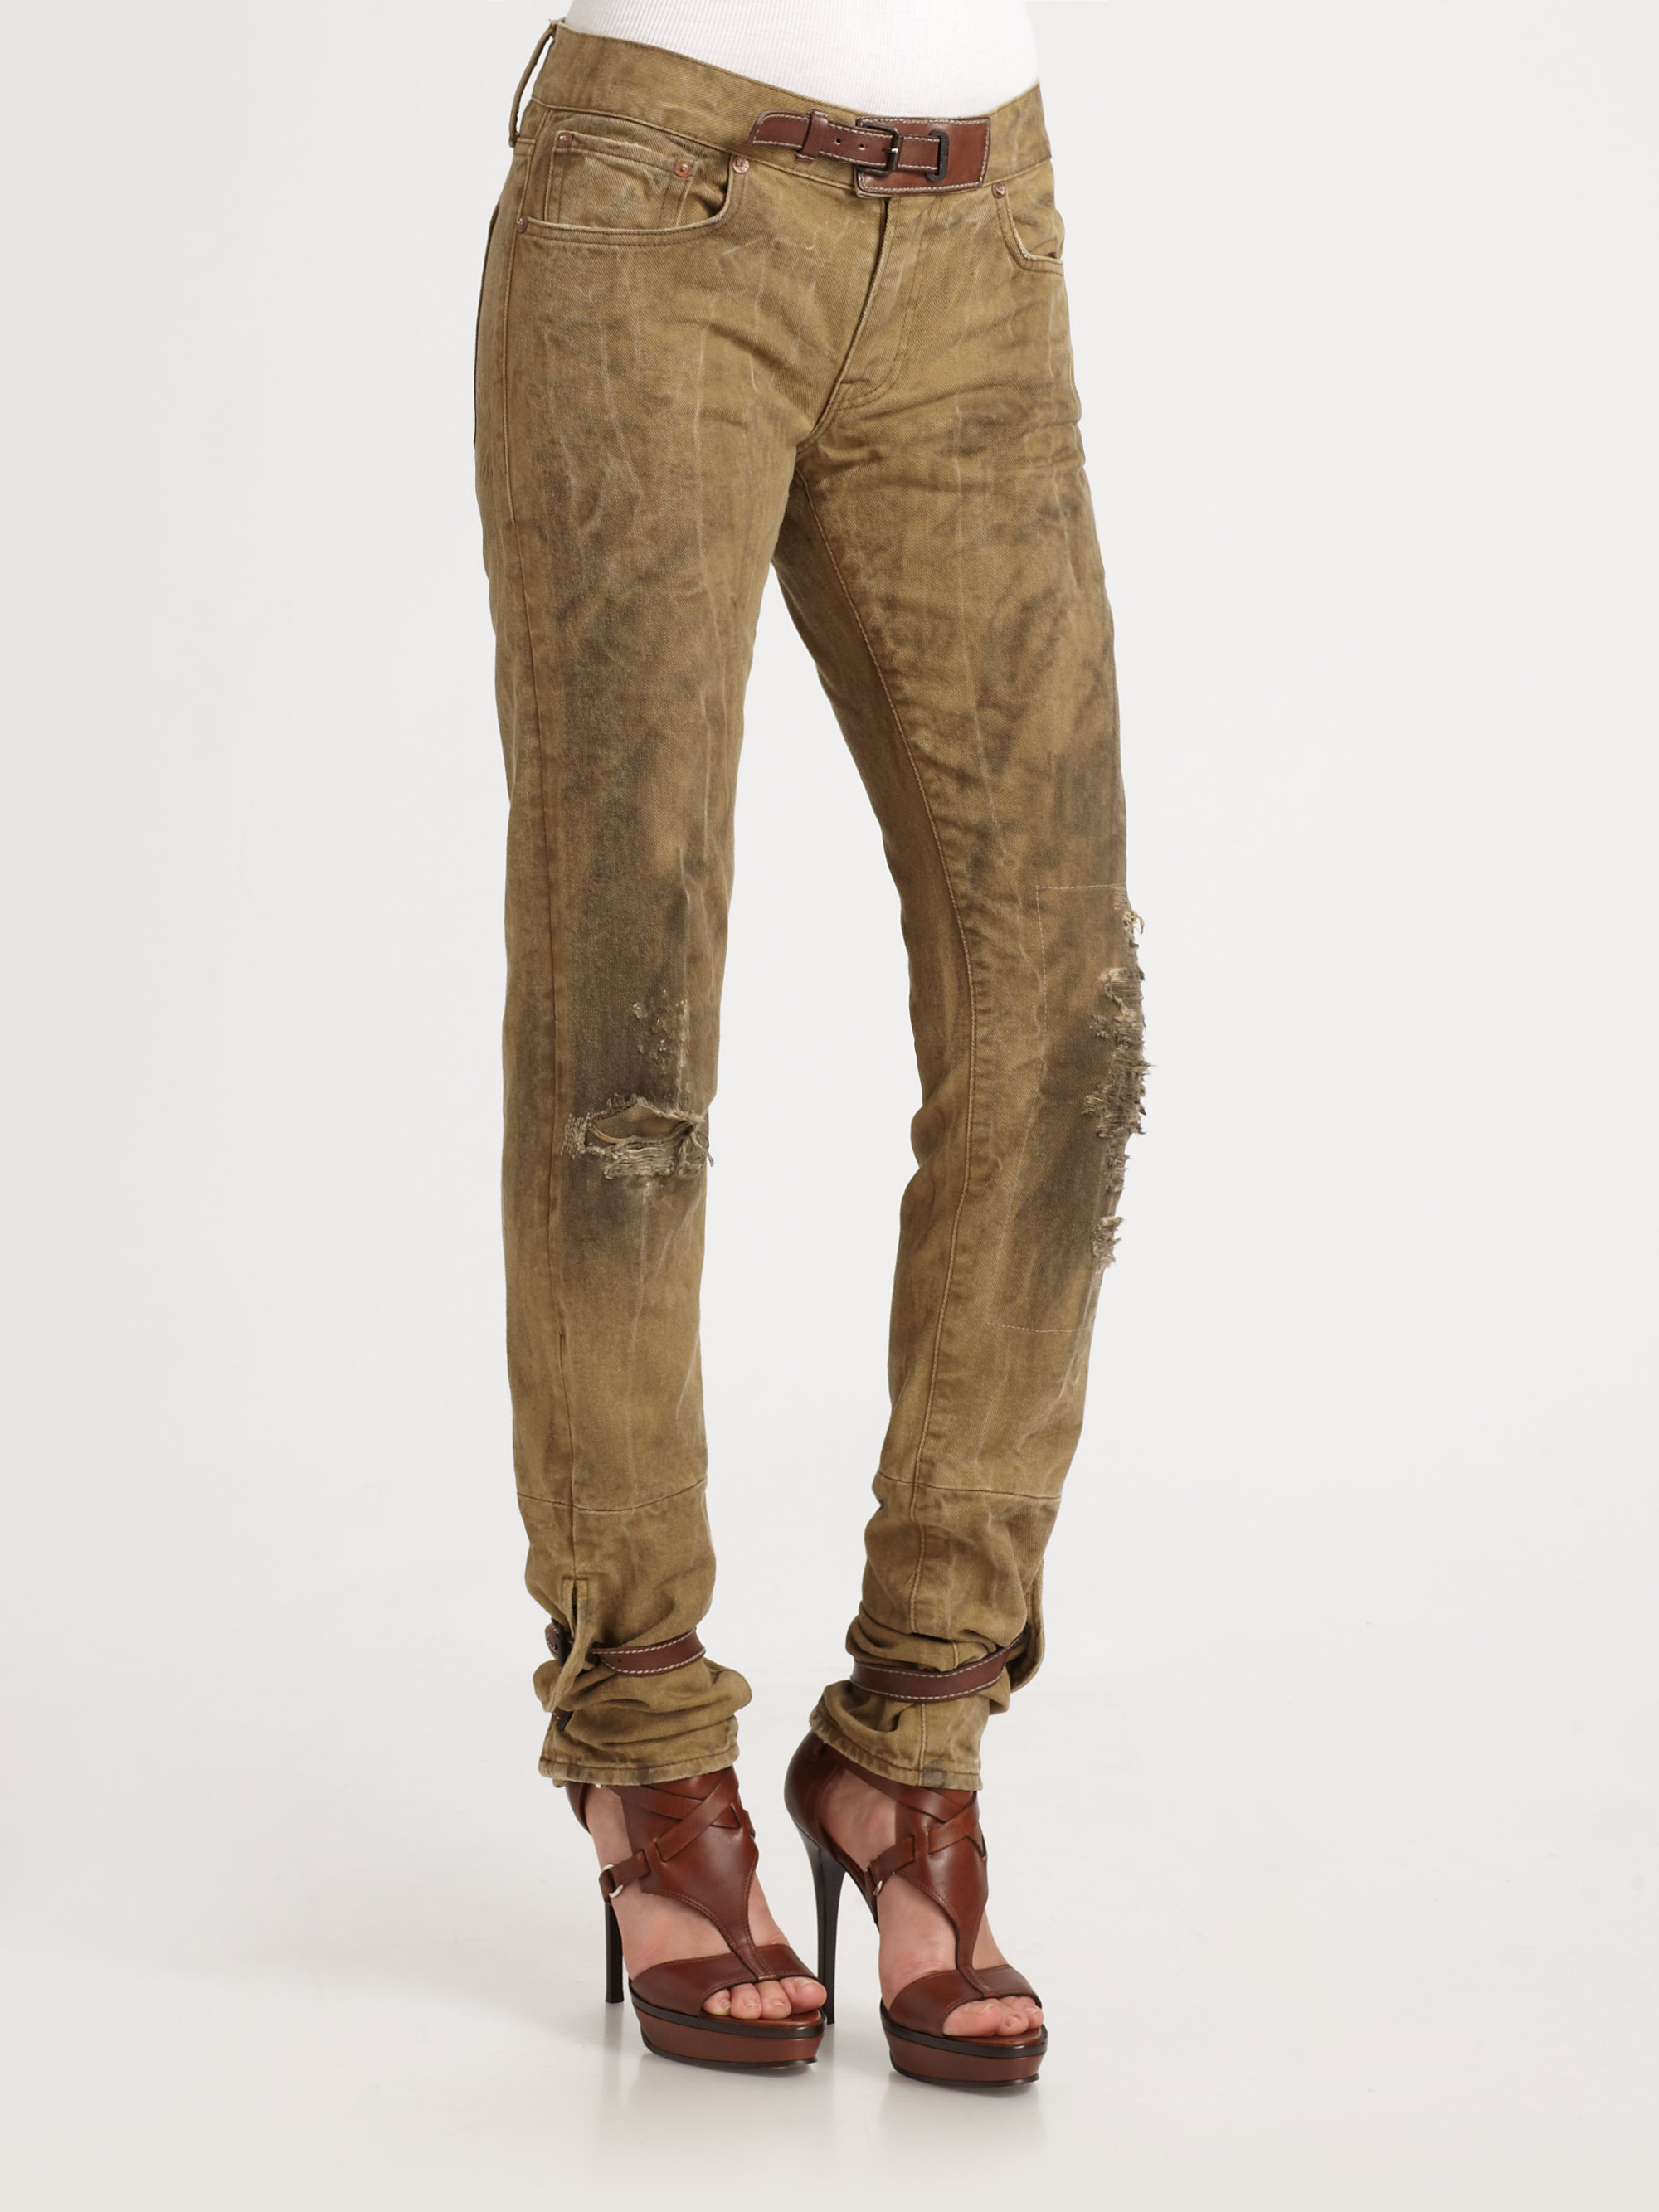 Ralph lauren blue label Leather Accented Distressed Jeans in Brown ...